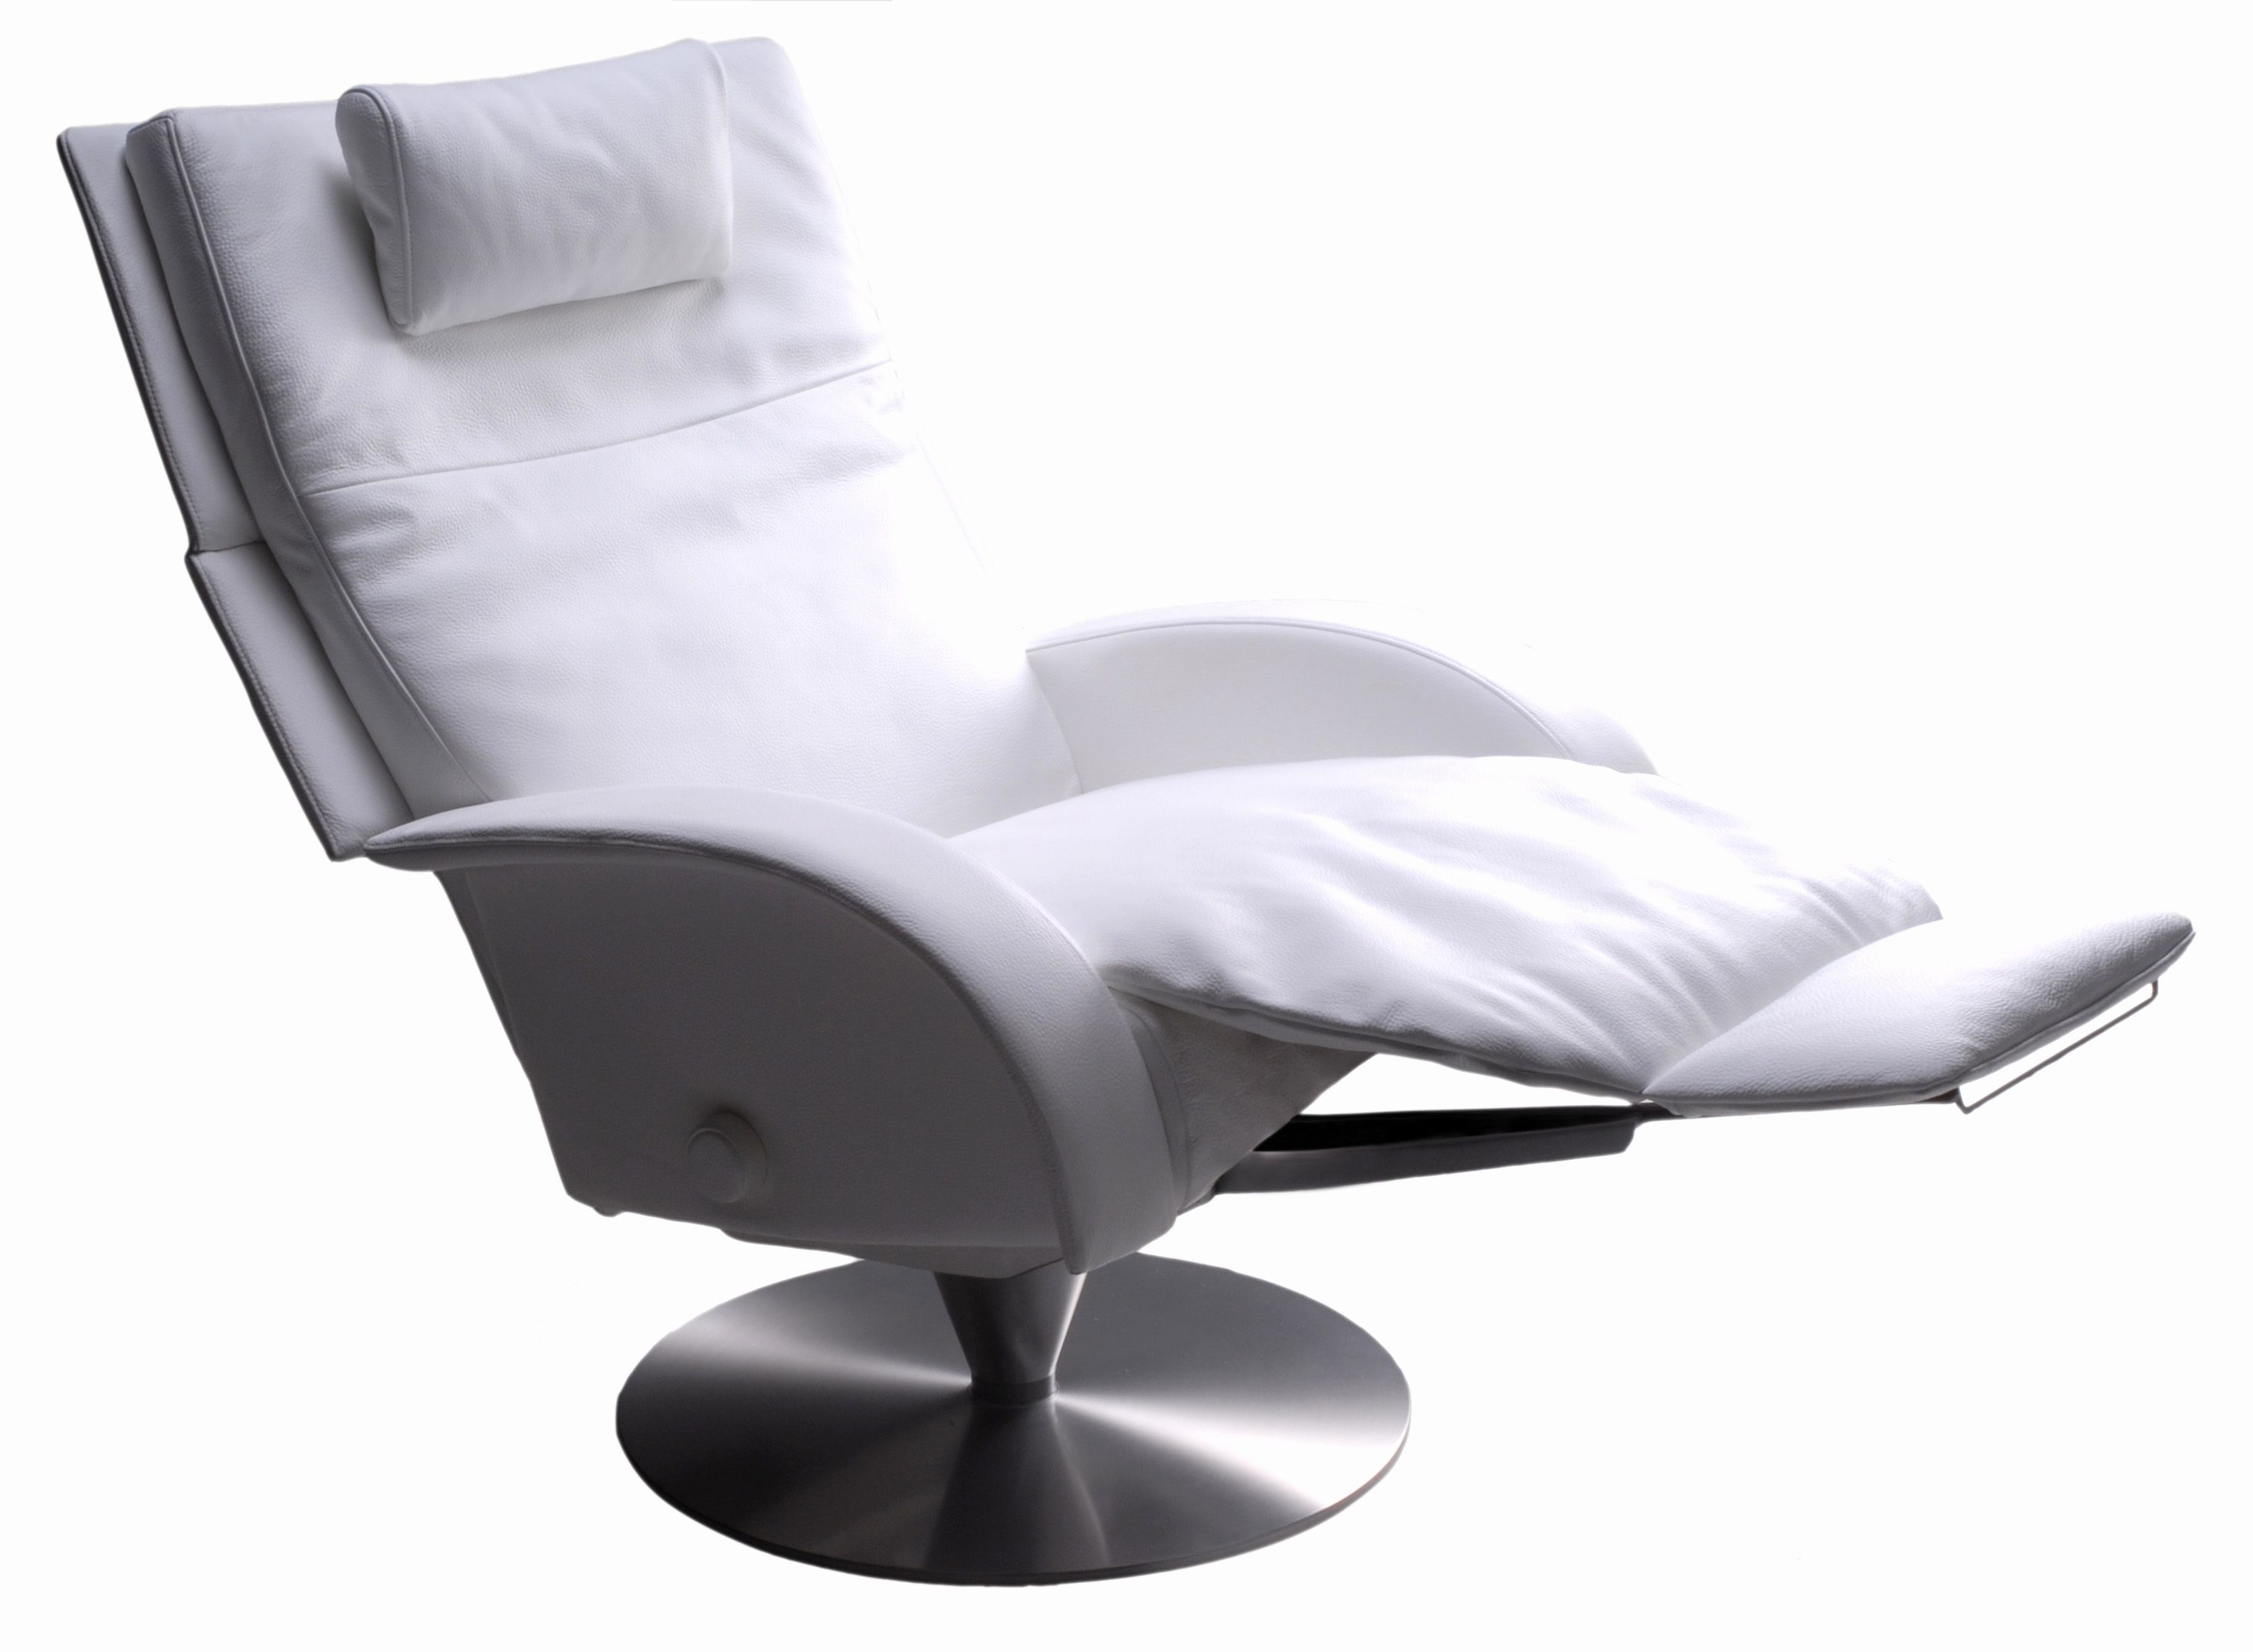 on recliner chairs best and reviews top chair flipboard list rated